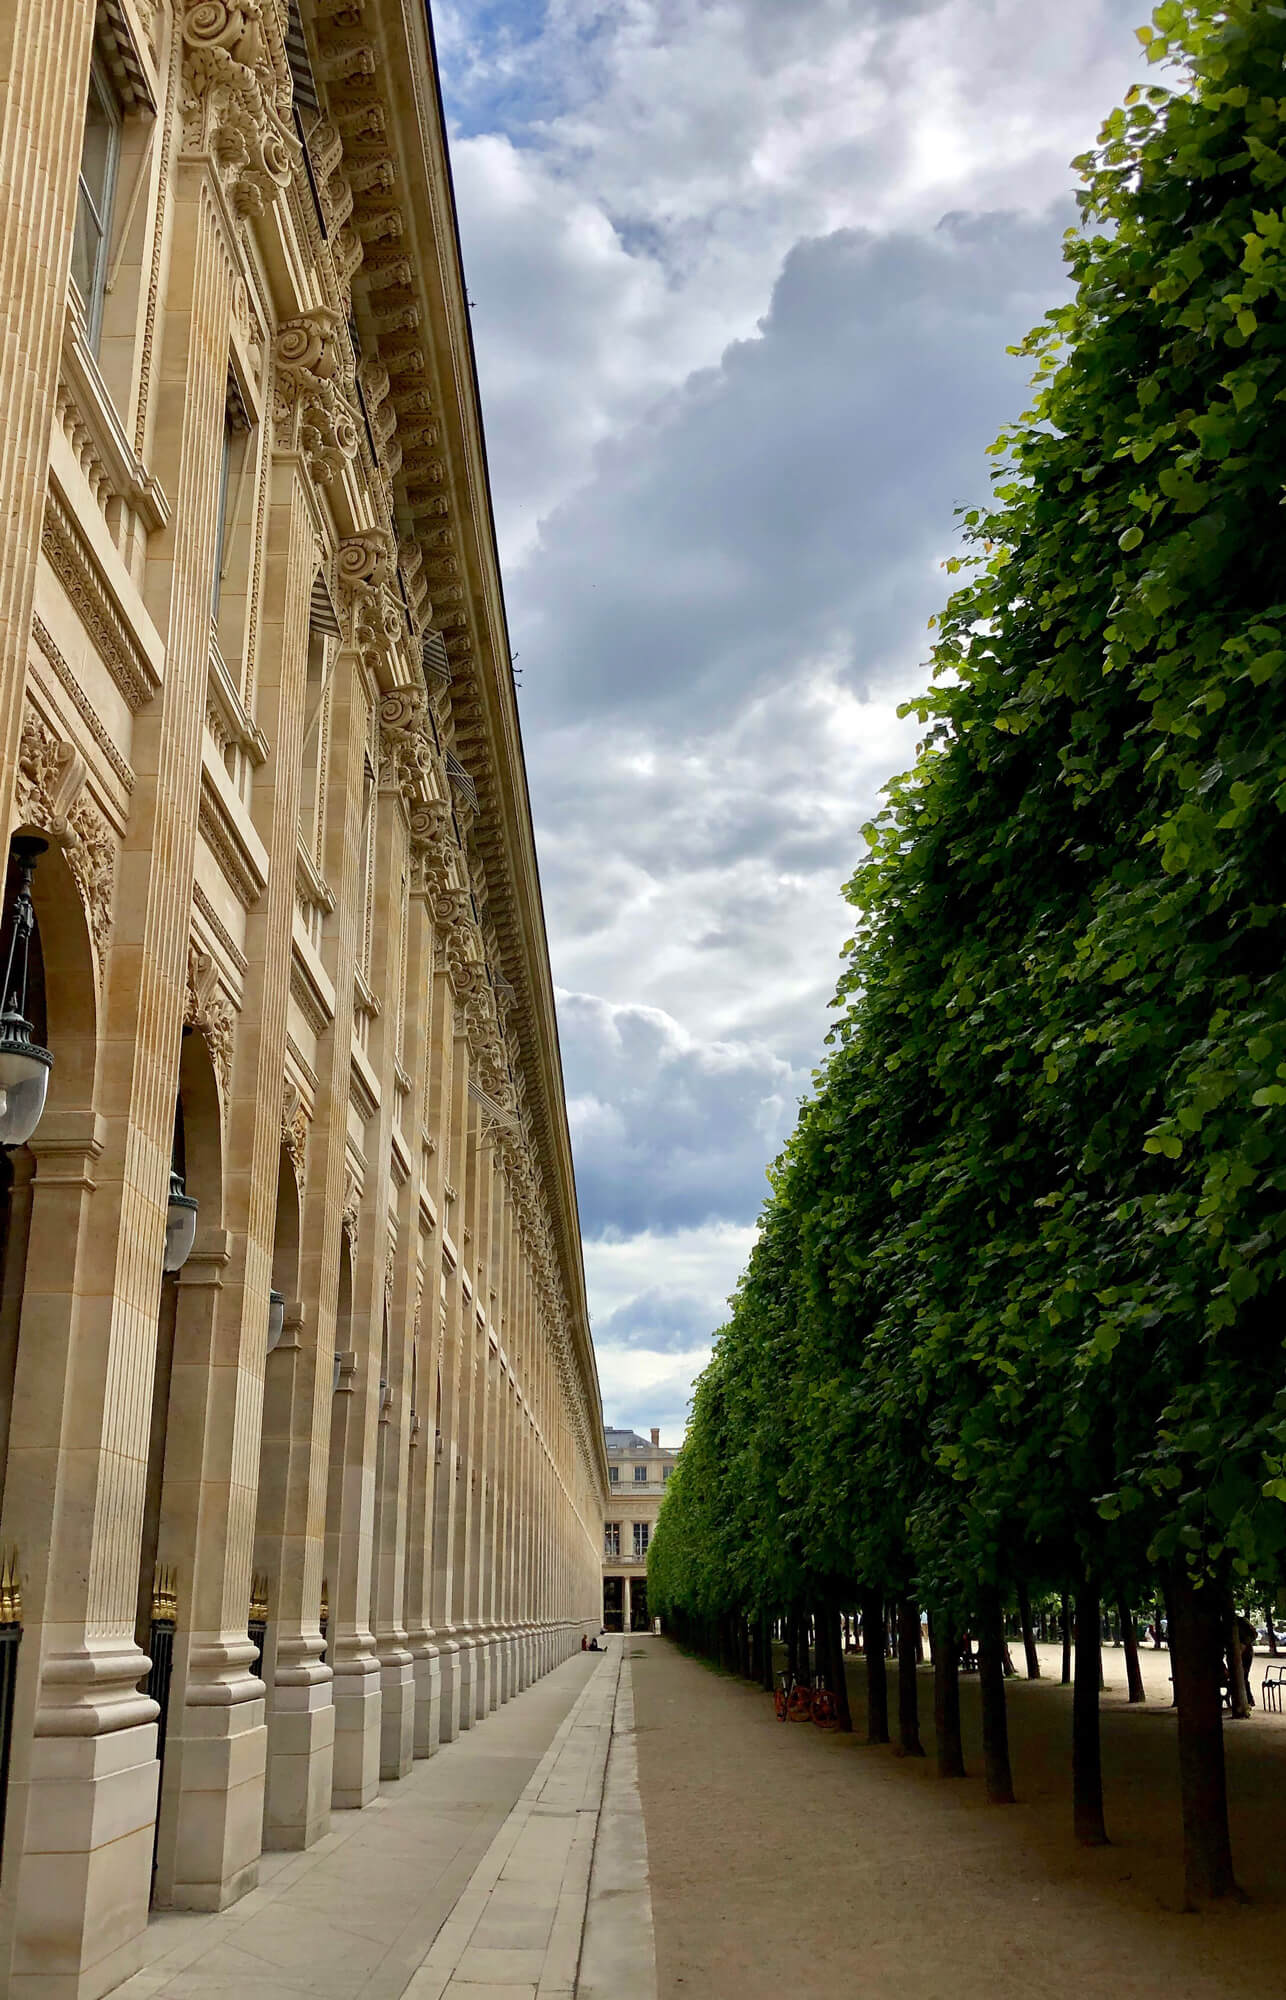 Palais-Royal garden in the heart of Paris, birth place of Charles Oudin maison.